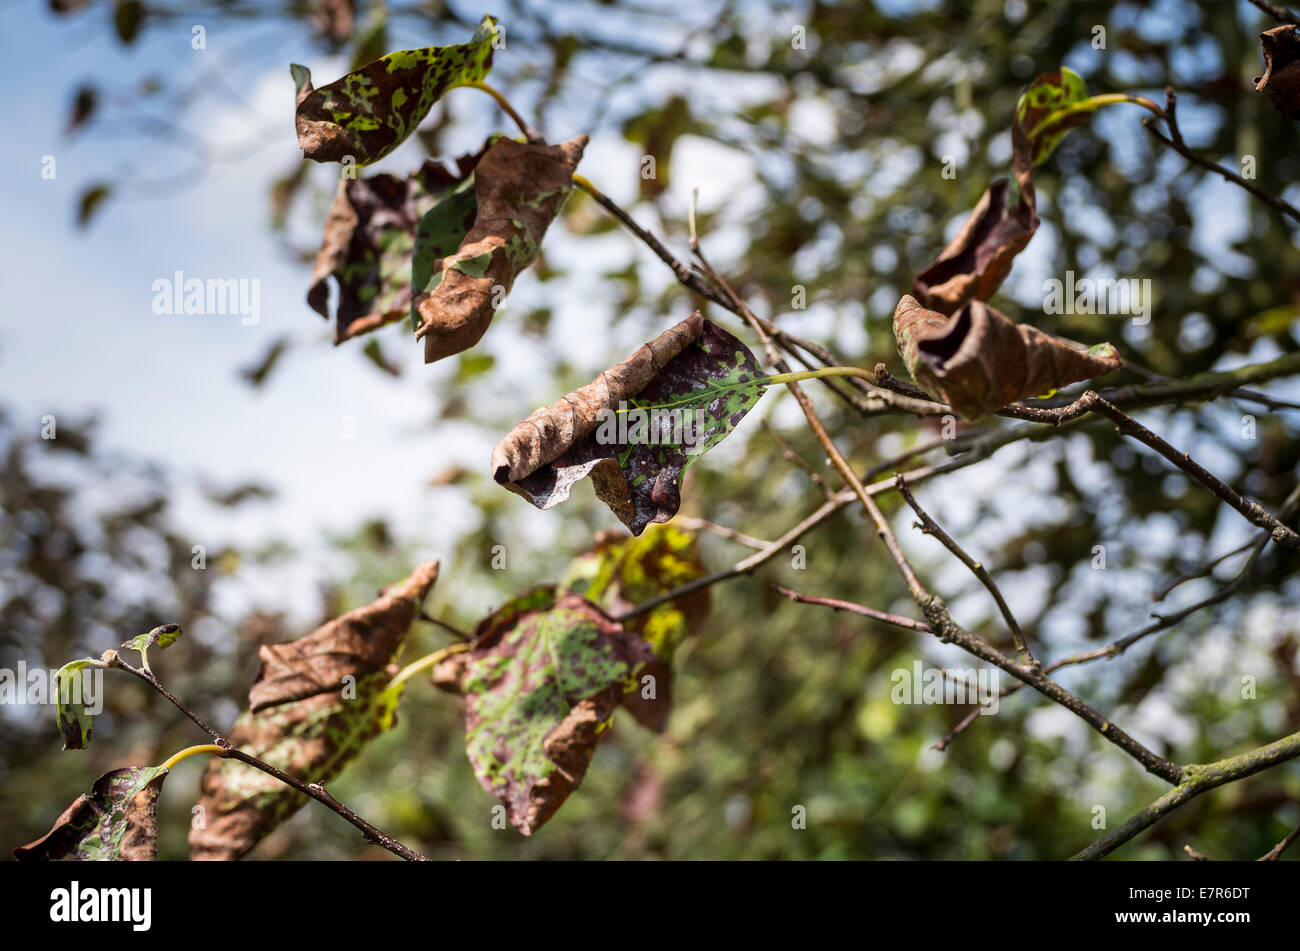 Cydonia oblonga tree with foliage suffering from a form of blight in UK - Stock Image